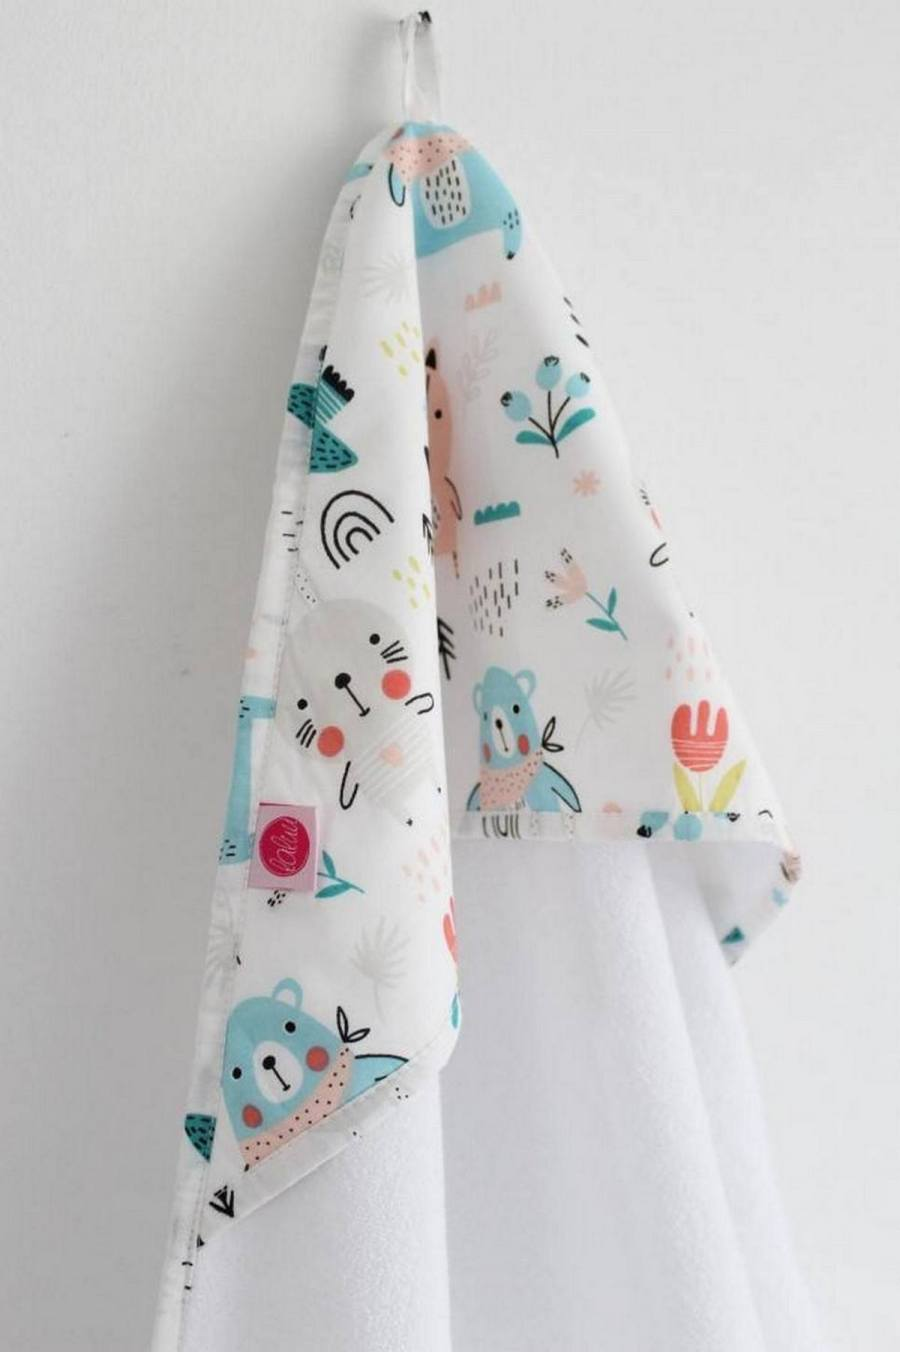 Babies get cold easily, which is why it's important to have a warm, cuddly baby towel ready and waiting for them as soon as their bath is finished.